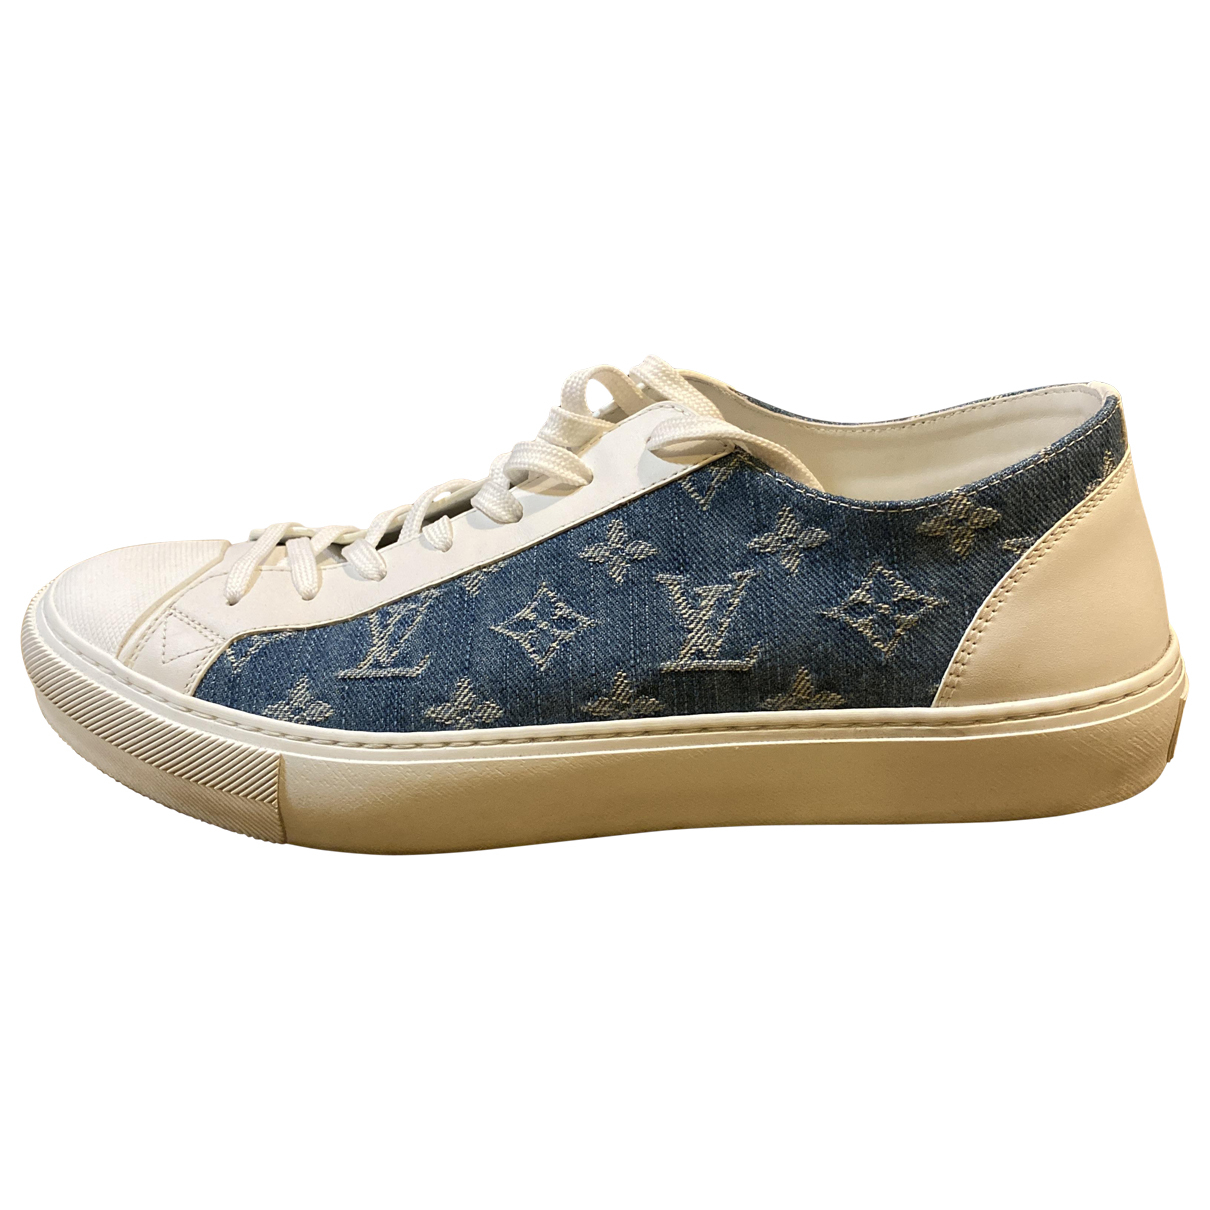 Louis Vuitton N White Leather Trainers for Men 8 UK